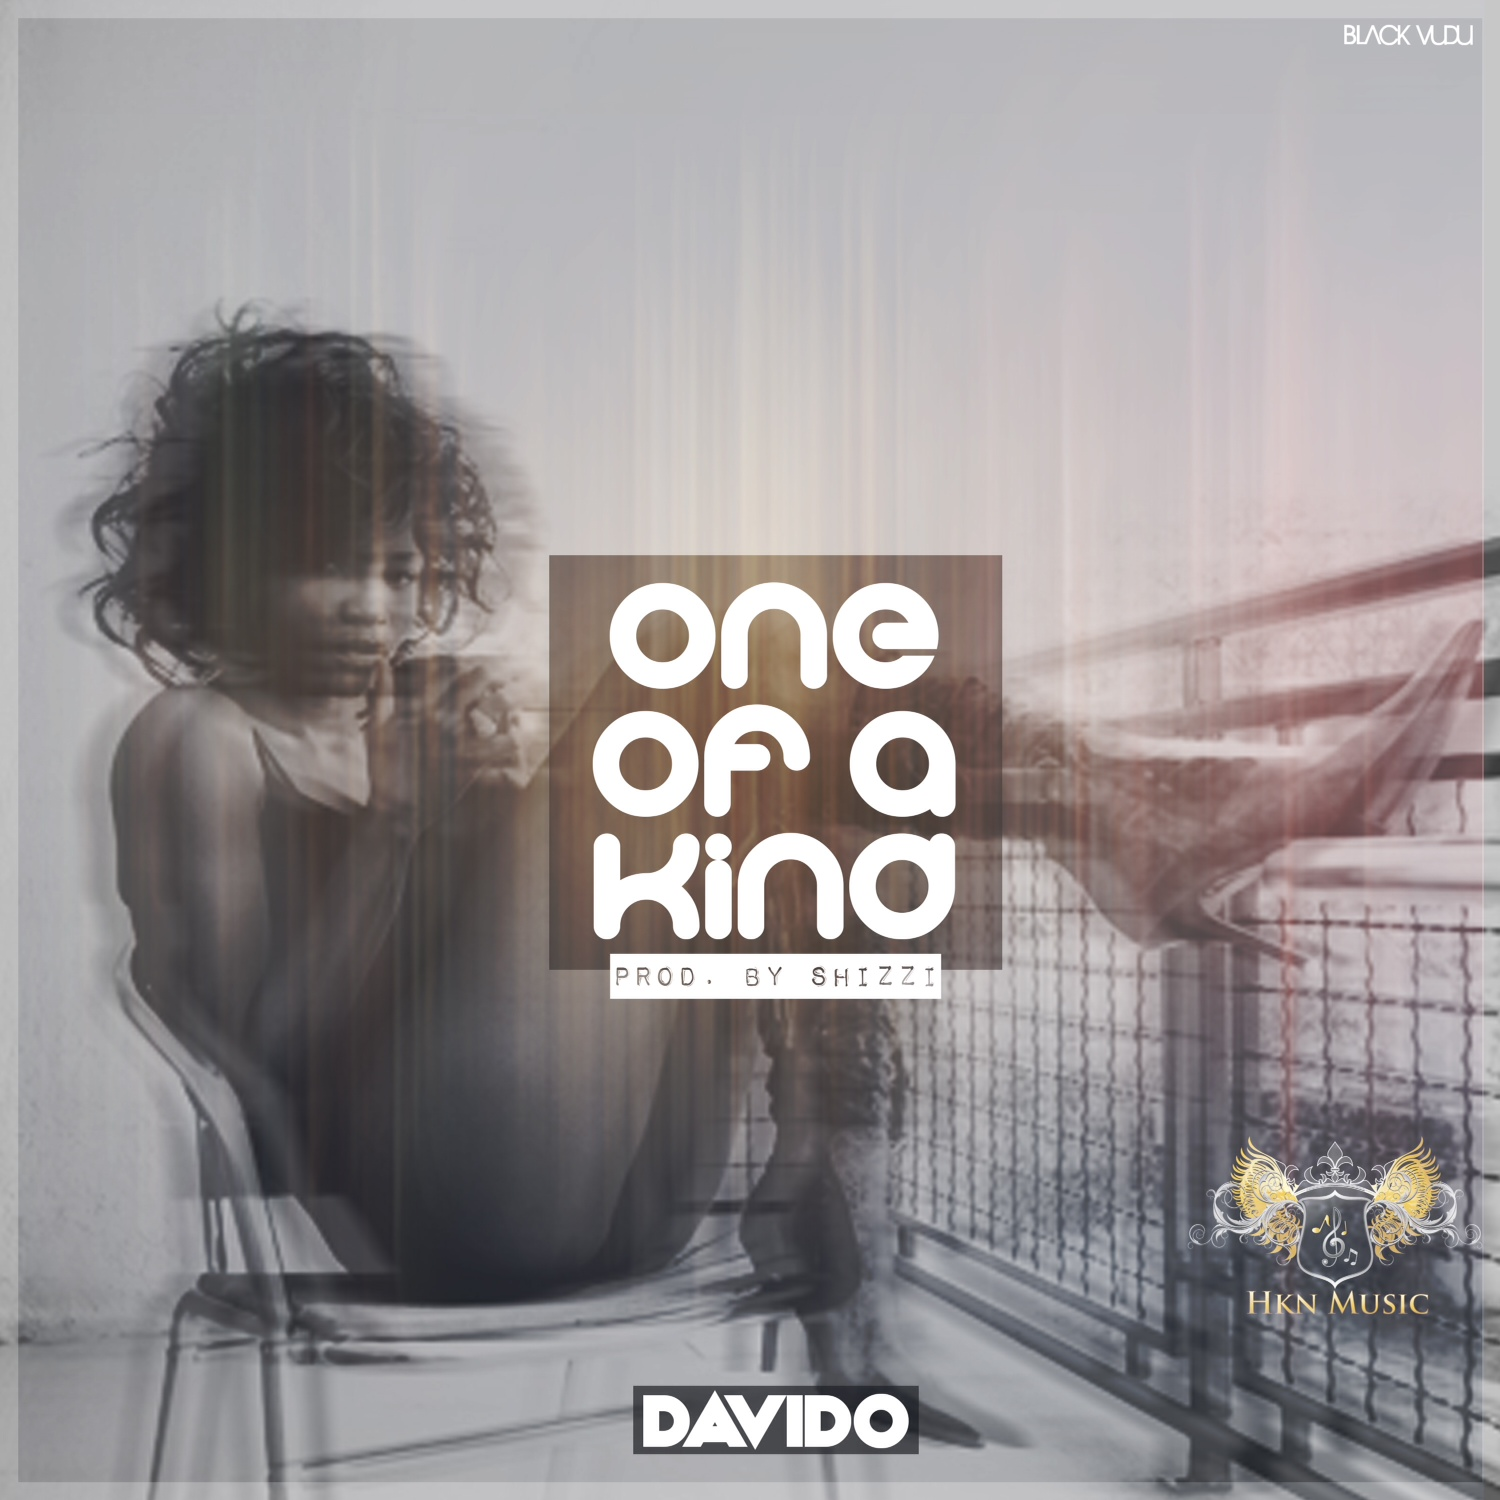 Davido One of a Kind Art